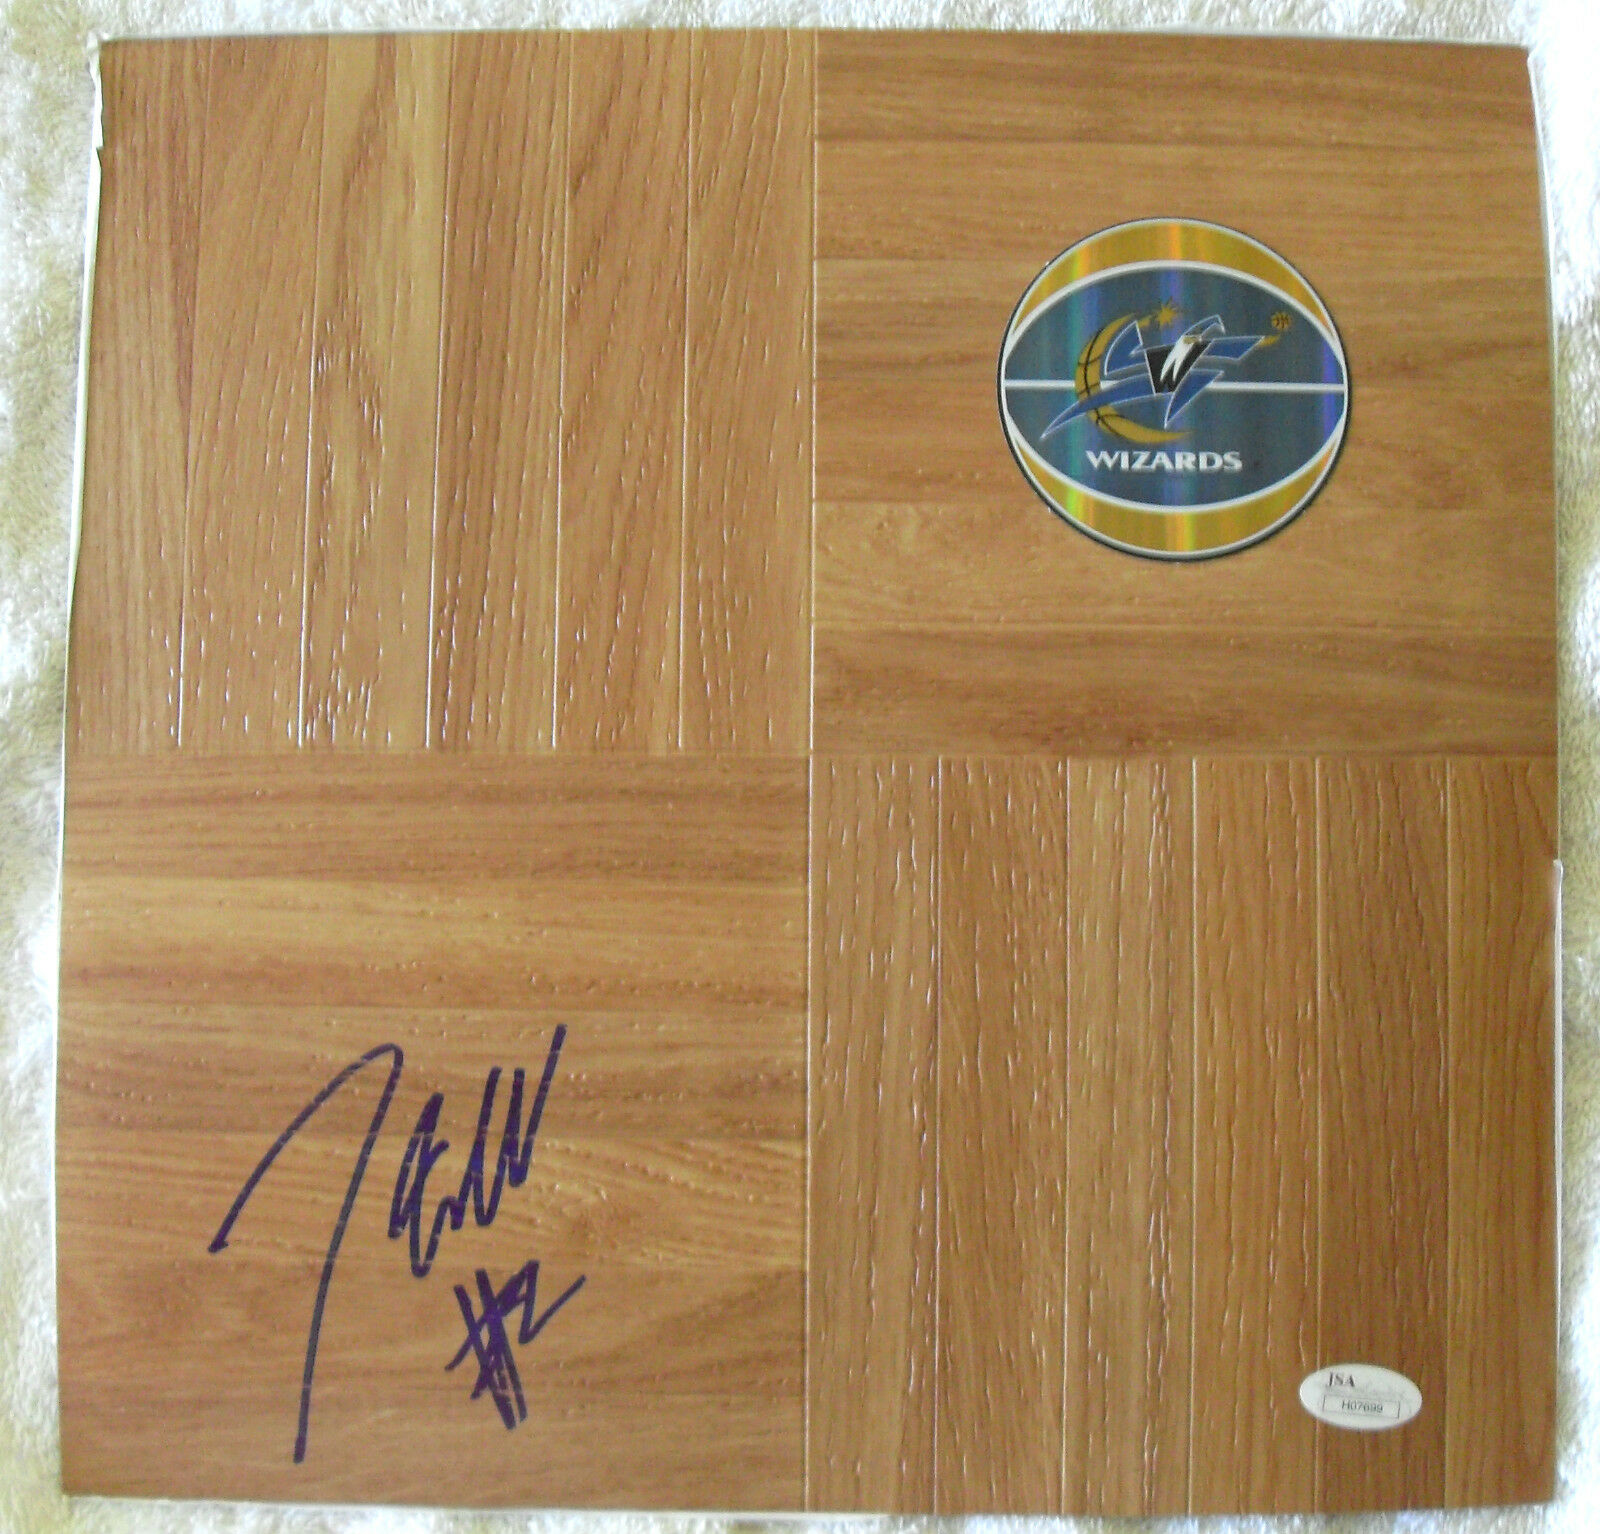 JOHN WALL SIGNED 12 x 12 FLOORBOARD NBA WIZARDS WILDCATS JSA COA H07699